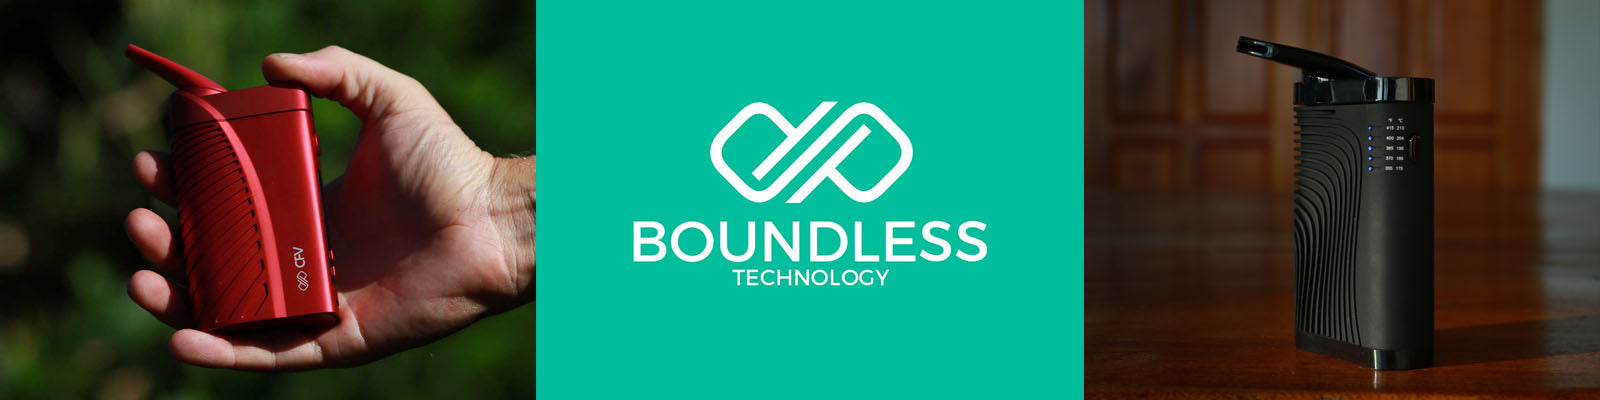 Boundless vaporisateurs livraison gratuite france Collection